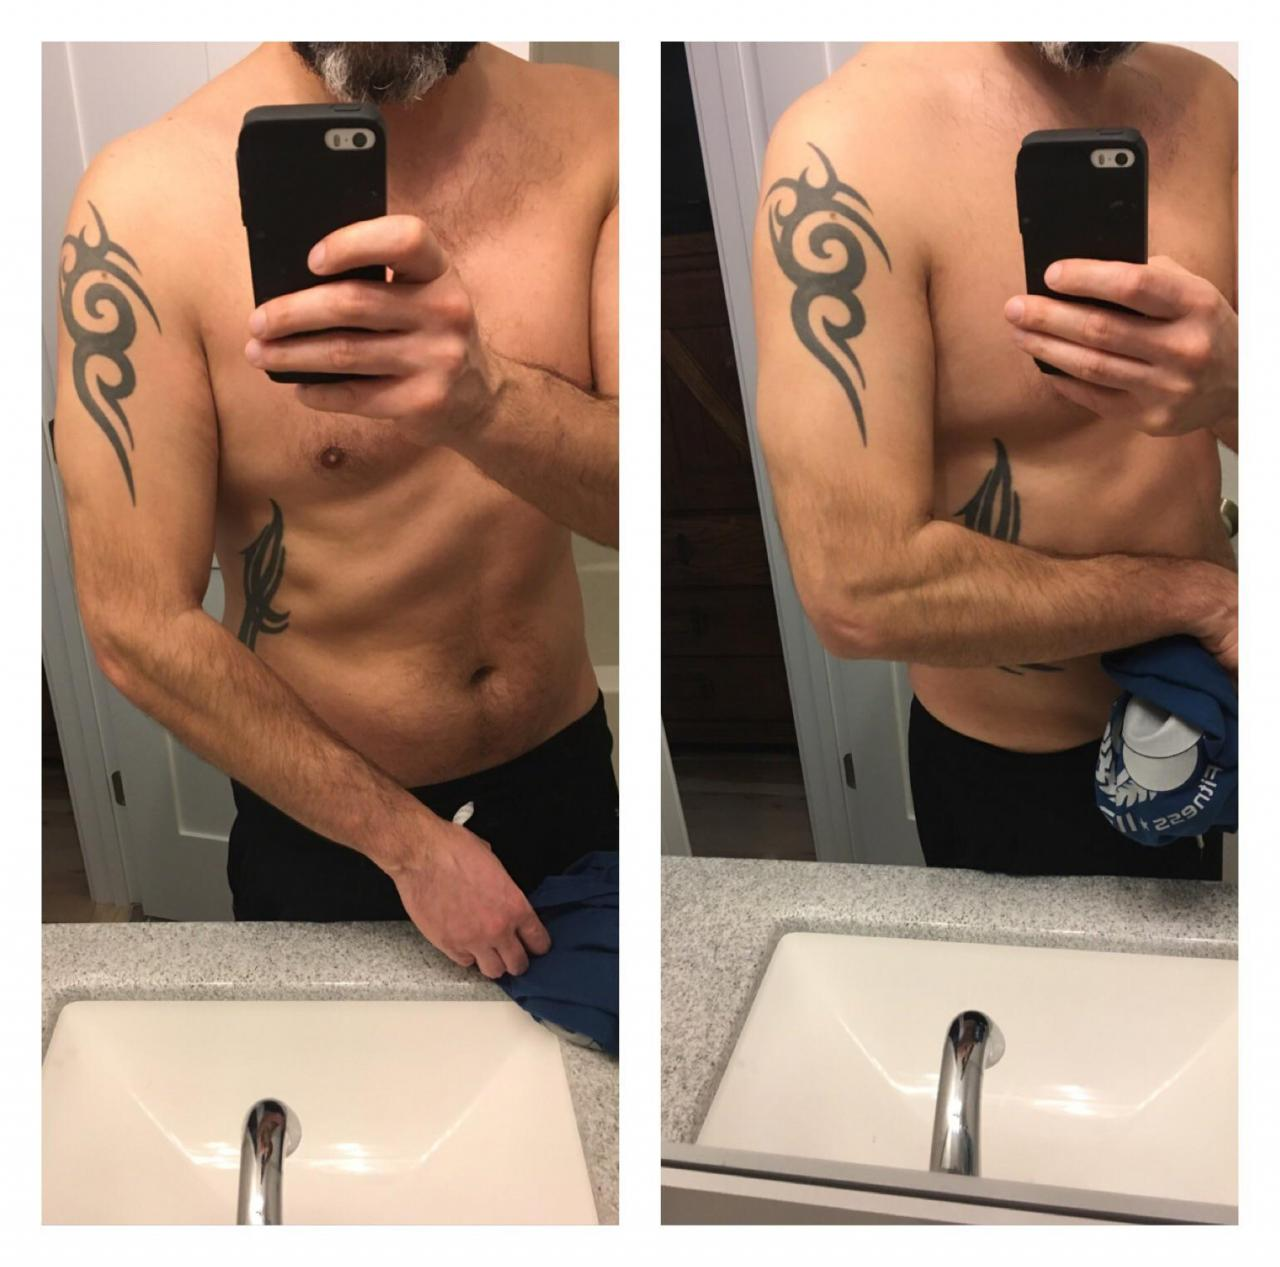 For the longest time I disliked the tribal tattoo on my arm. It has no significance to me and was a dumb move by me. Seriously thinking about doing a 1/4 sleeve cover up. Wondering what you all think. Does this look as shitty as I imagine it looks? Rather than cover up should I add to it instead?